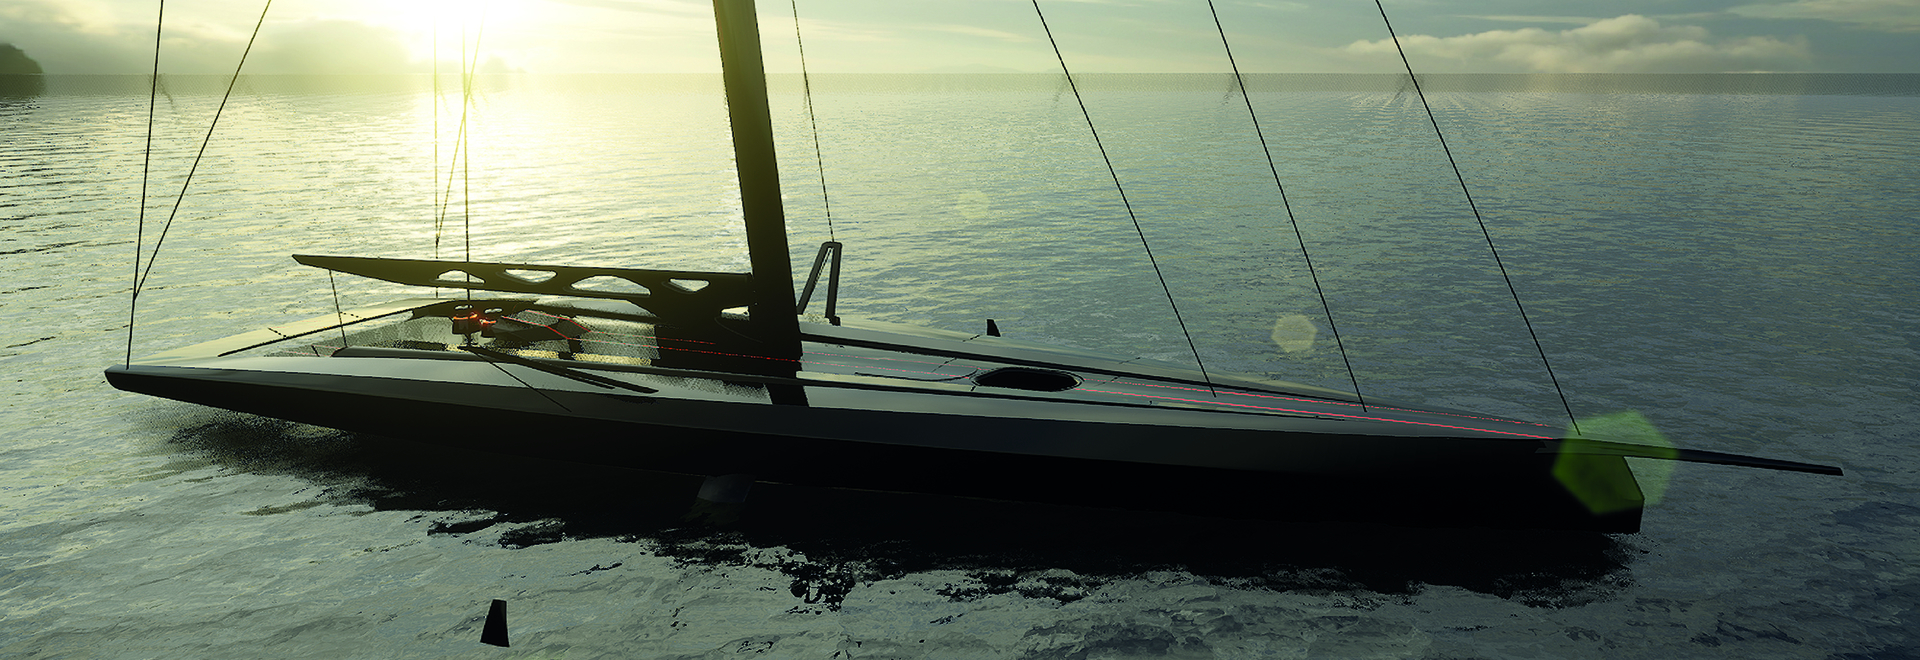 Persico Marine and Carkeek Design Partners introduce F 70 full-foiling day sailer-racer